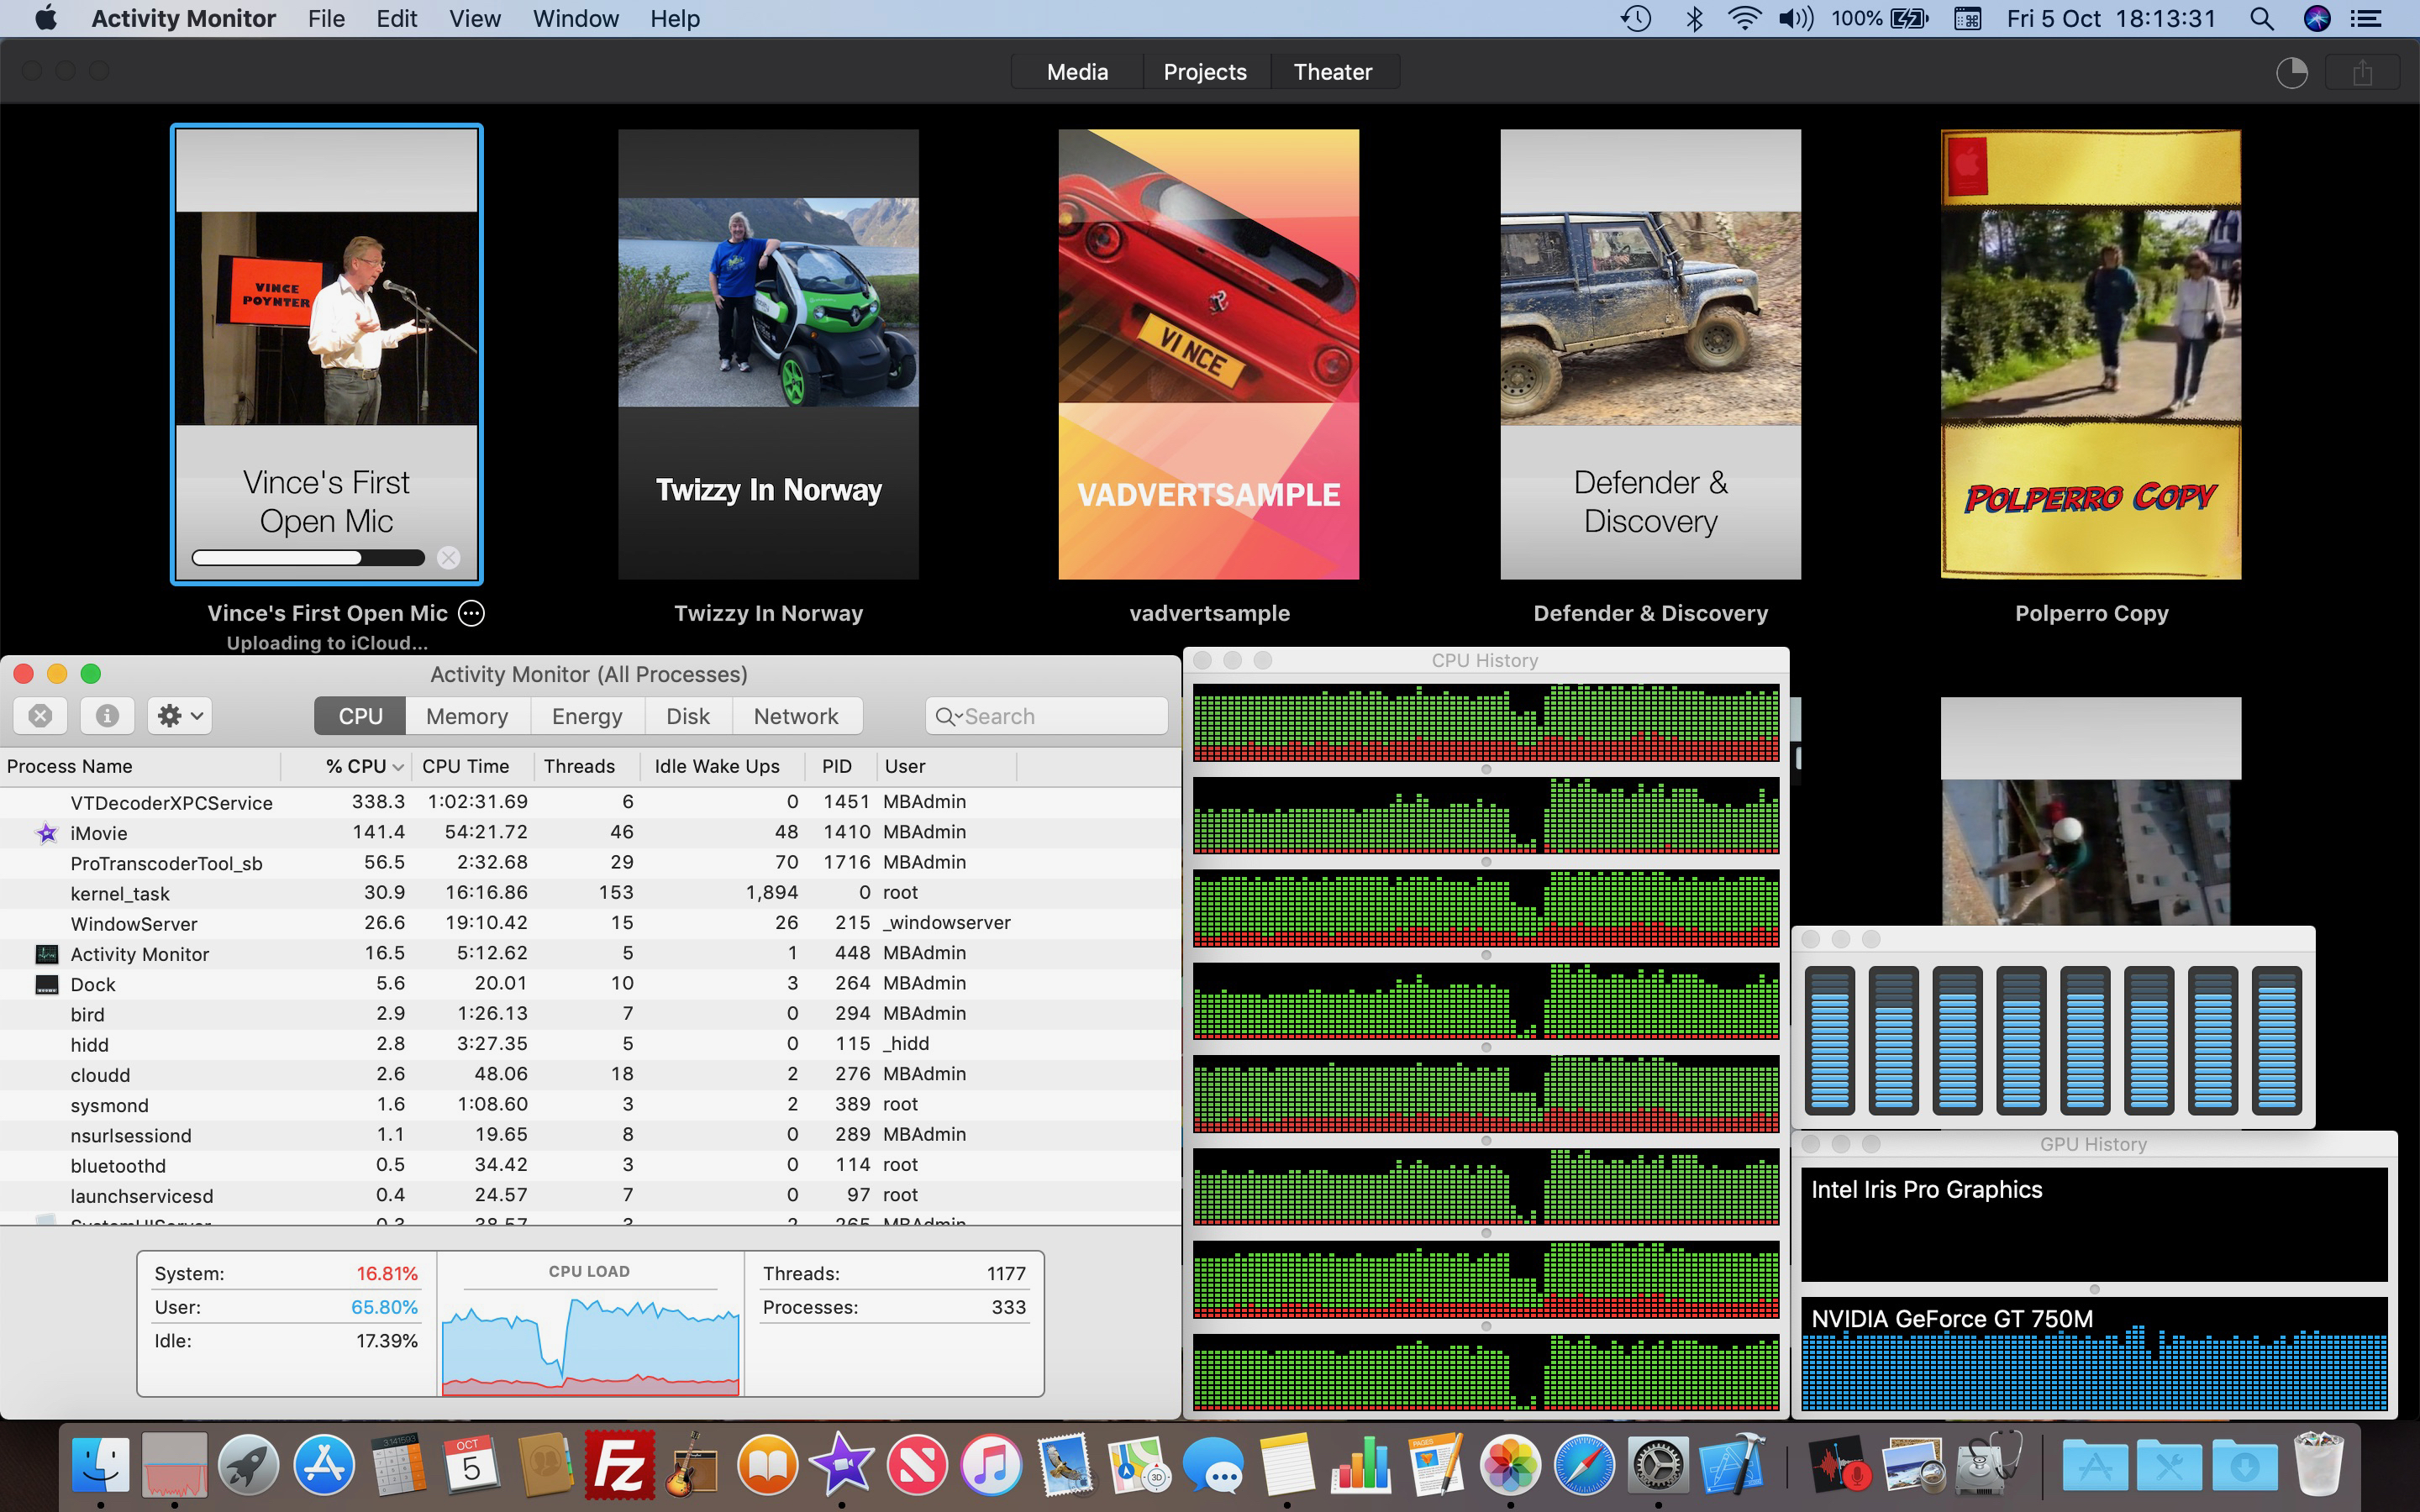 A screenshot showing the Activity Monitor overlaid over iMovie Theatre with a number of projects. One of the projects, entitled 'Vince's First Open Mic' is showing as uploading to iCloud. The Activity Monitor is showing four windows, All Processes, CPU History, Core performance and Graphics Cards. The data stream and level meters show almost maximum use on all the cores, the CPU load and the NVIDIA GeForce GT 750M graphics card